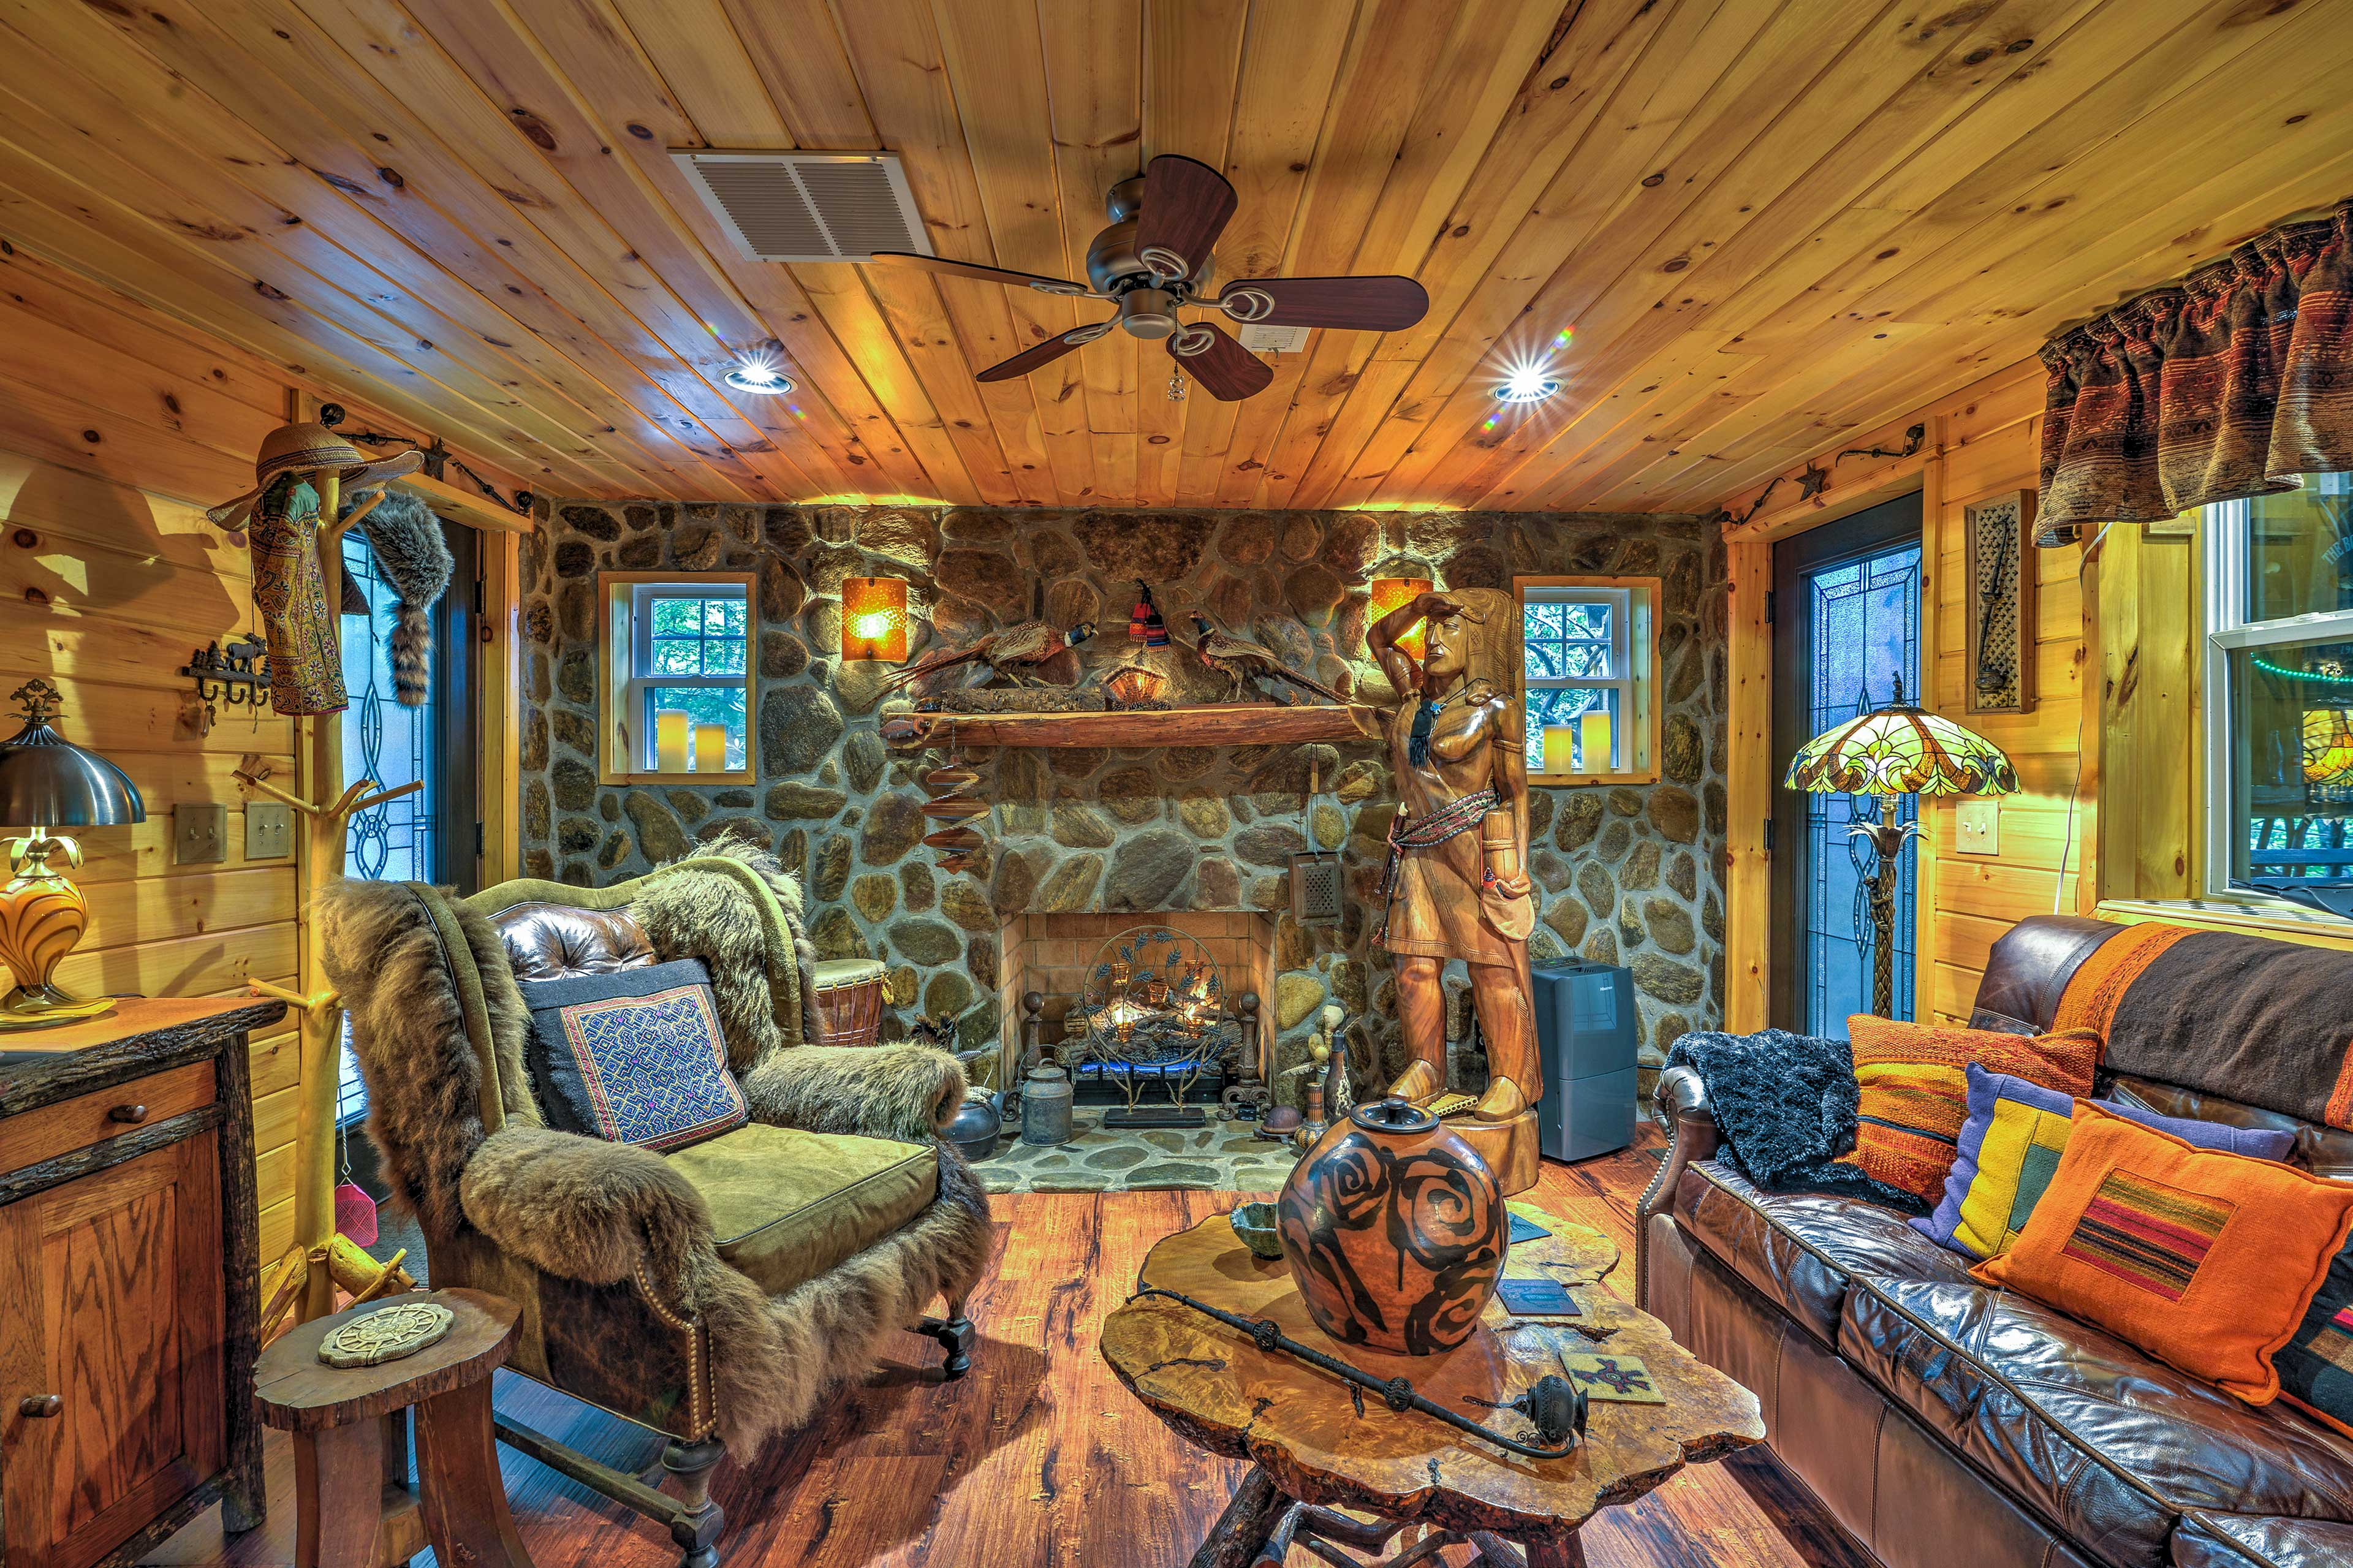 This space is filled with Cherokee-inspired influences in each room.